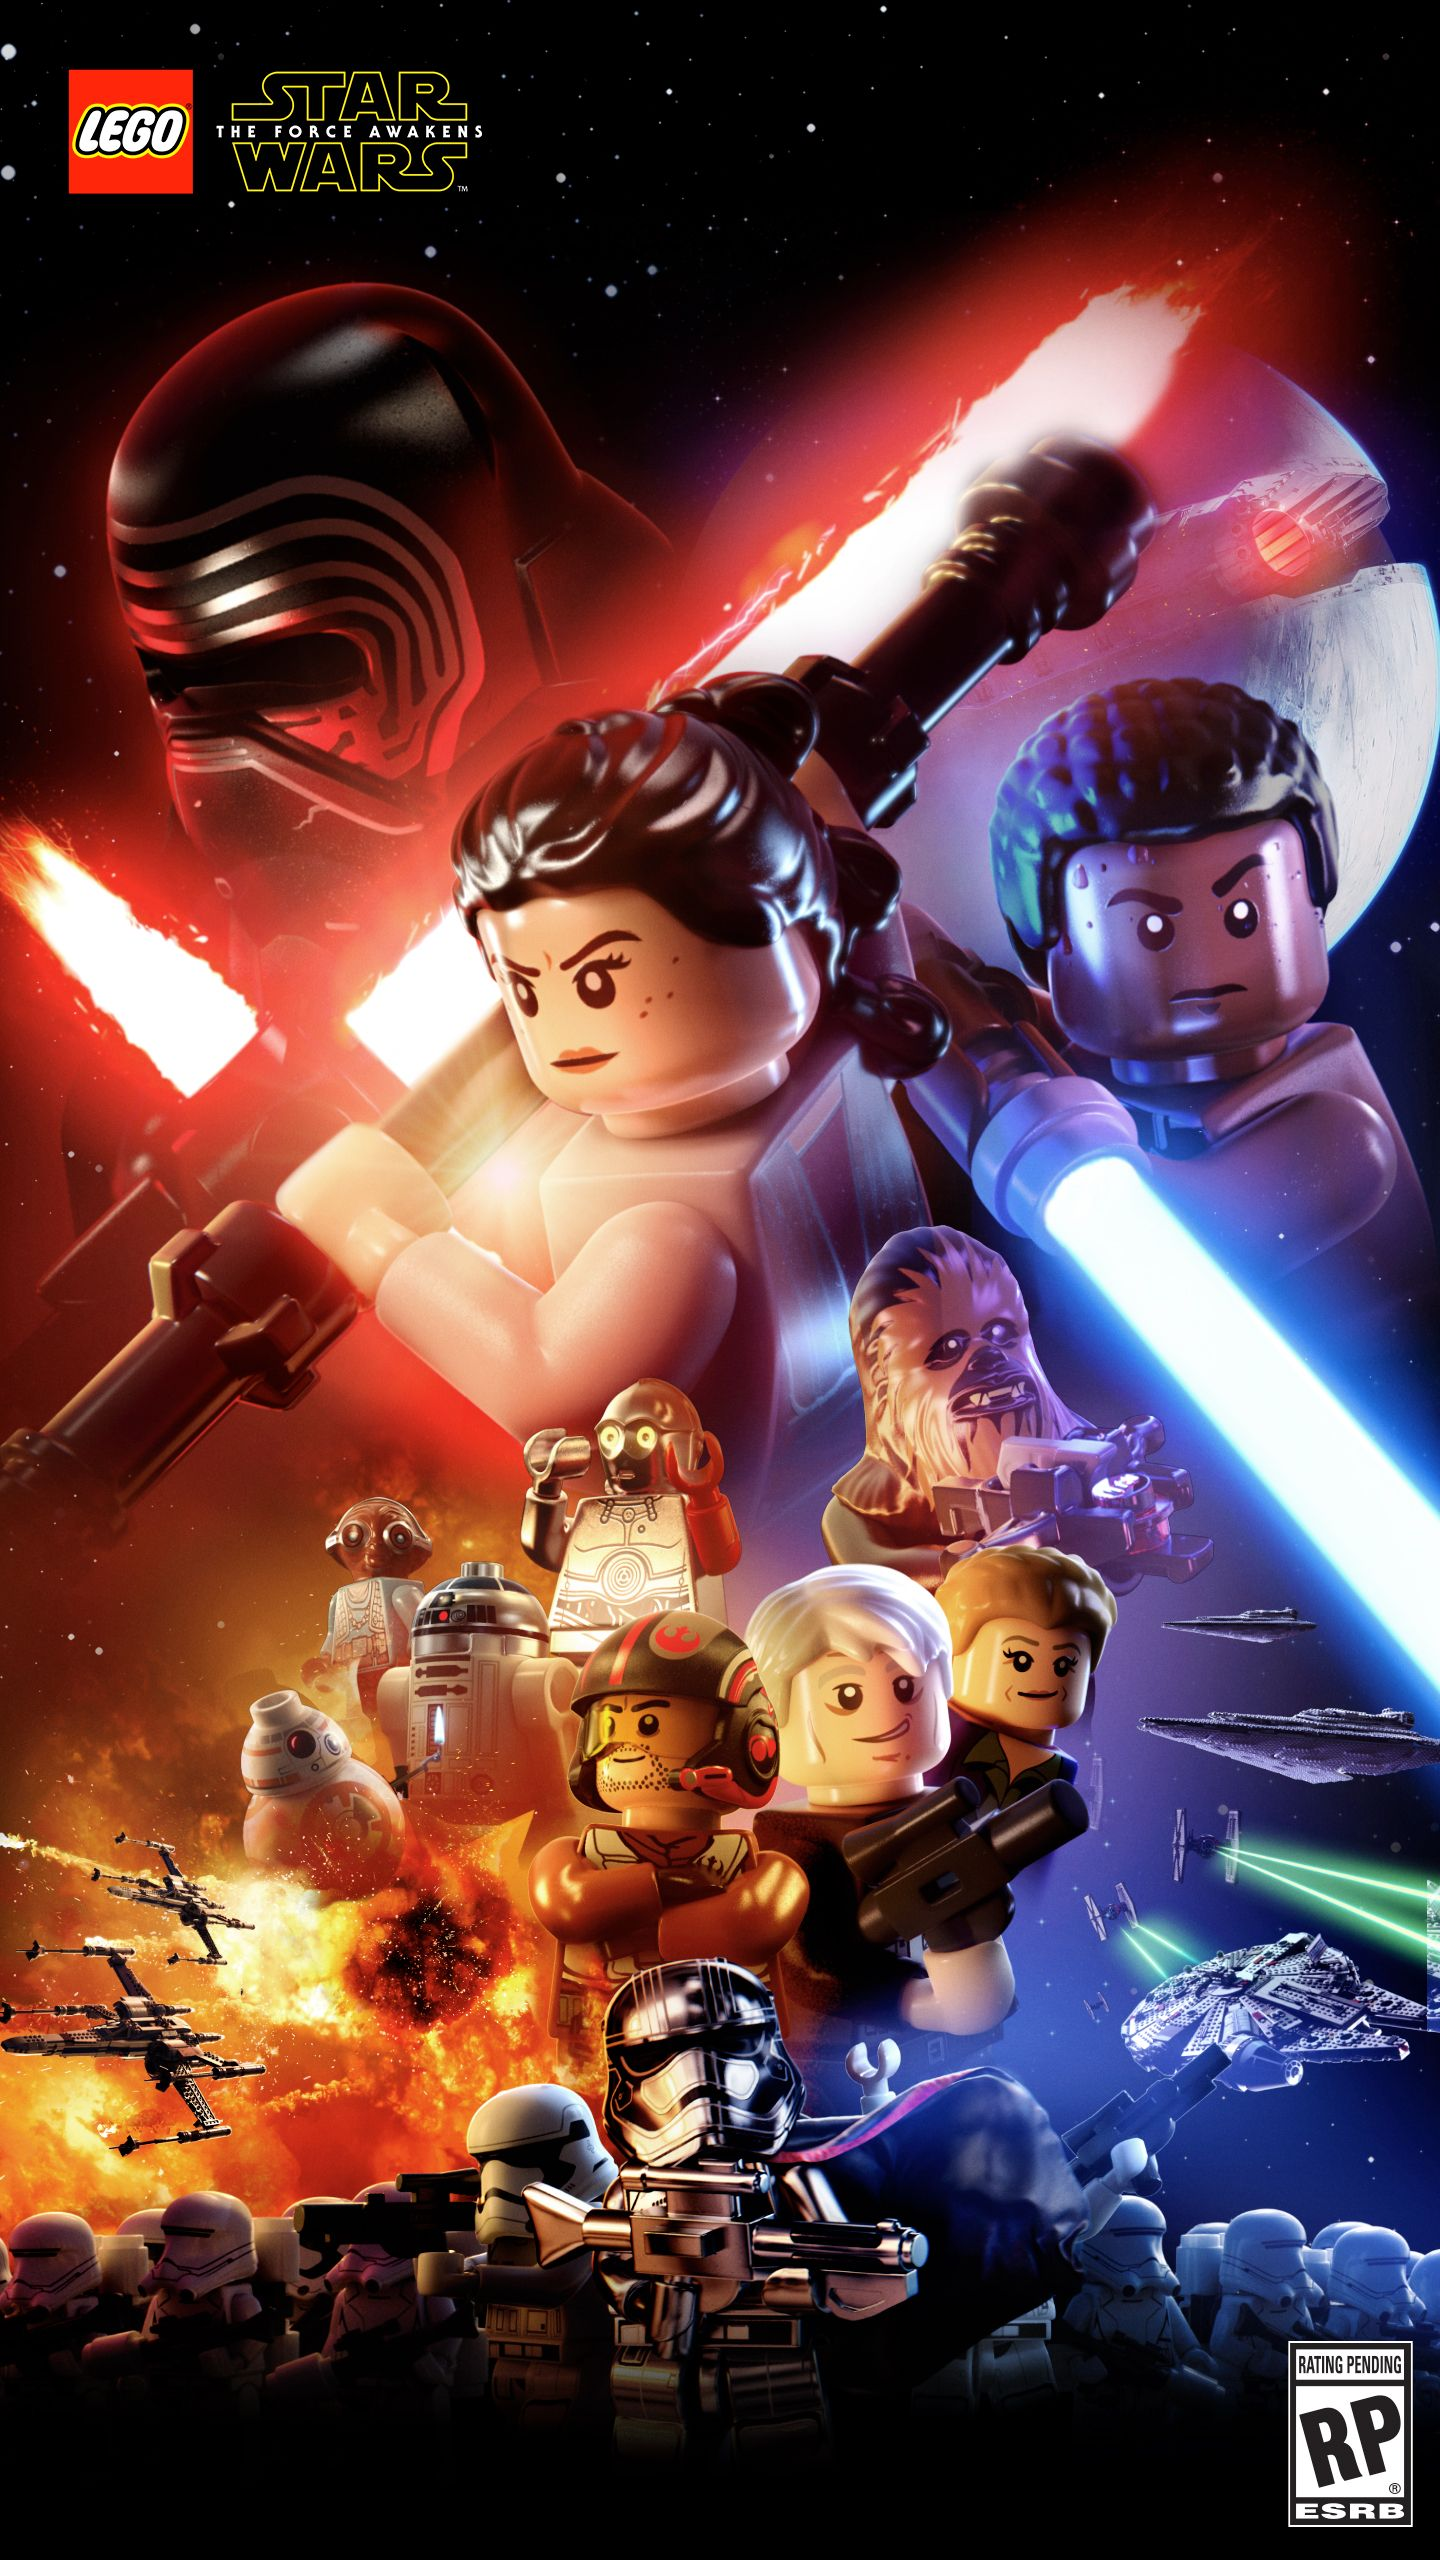 Lego Star Wars Iphone Wallpapers Top Free Lego Star Wars Iphone Backgrounds Wallpaperaccess